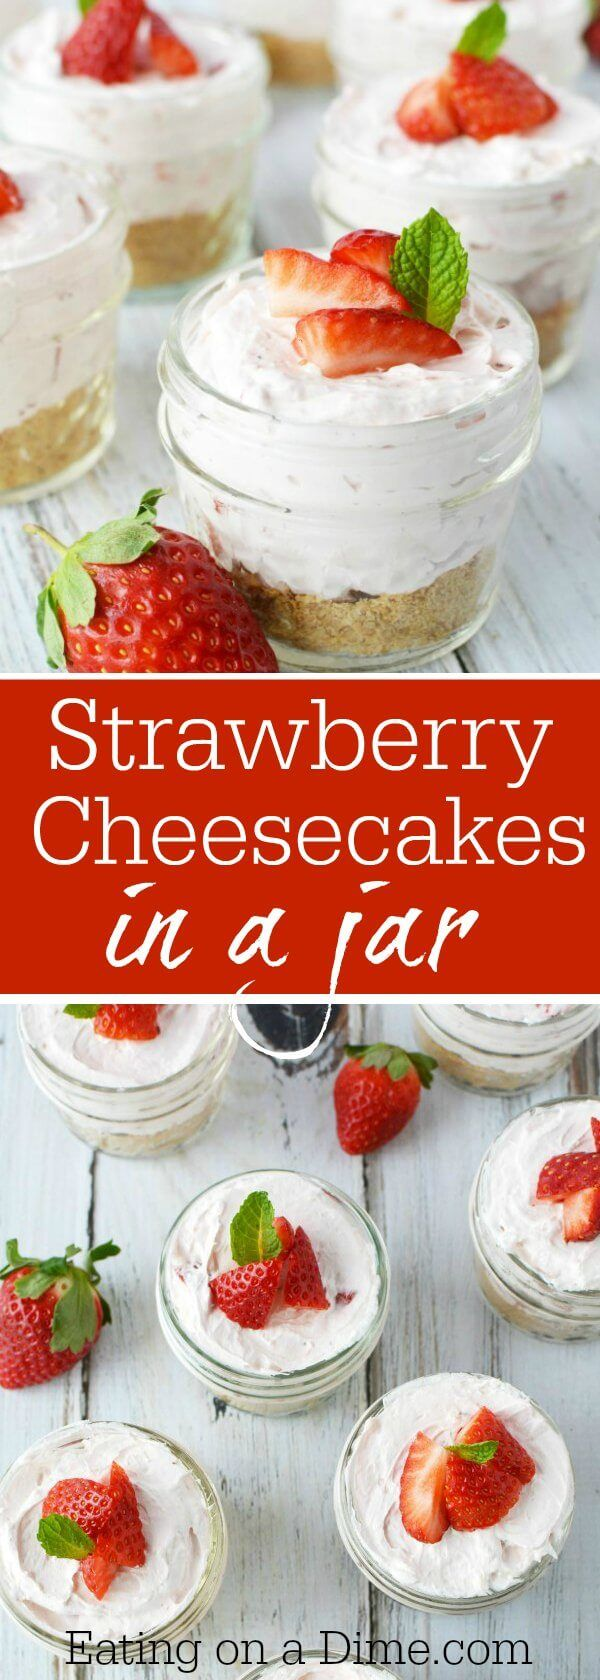 This adorable No Bake Strawberry Cheesecake in a Jar recipe is so yummy! You will love this Easy Strawberry Cheesecake Recipe. No Bake Strawberry Cheesecake Recipe is perfect for all occasions! The little jars are so cute!